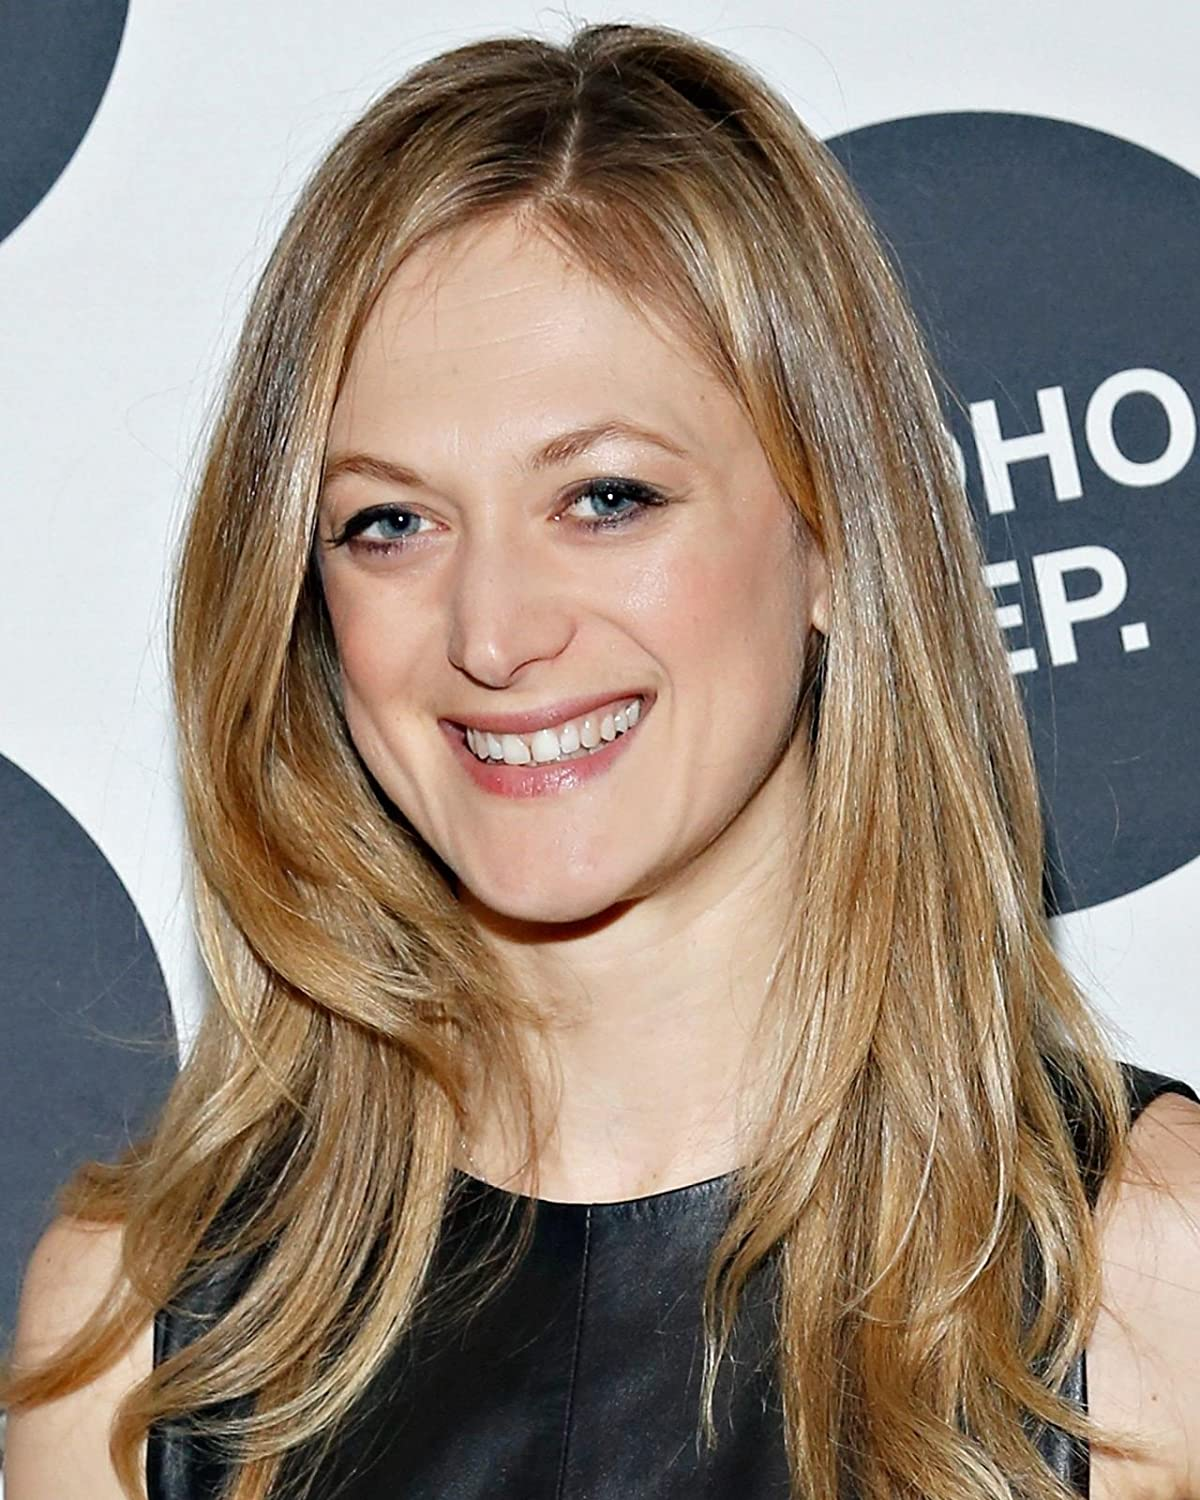 Images Marin Ireland nude (42 foto and video), Tits, Fappening, Boobs, braless 2020